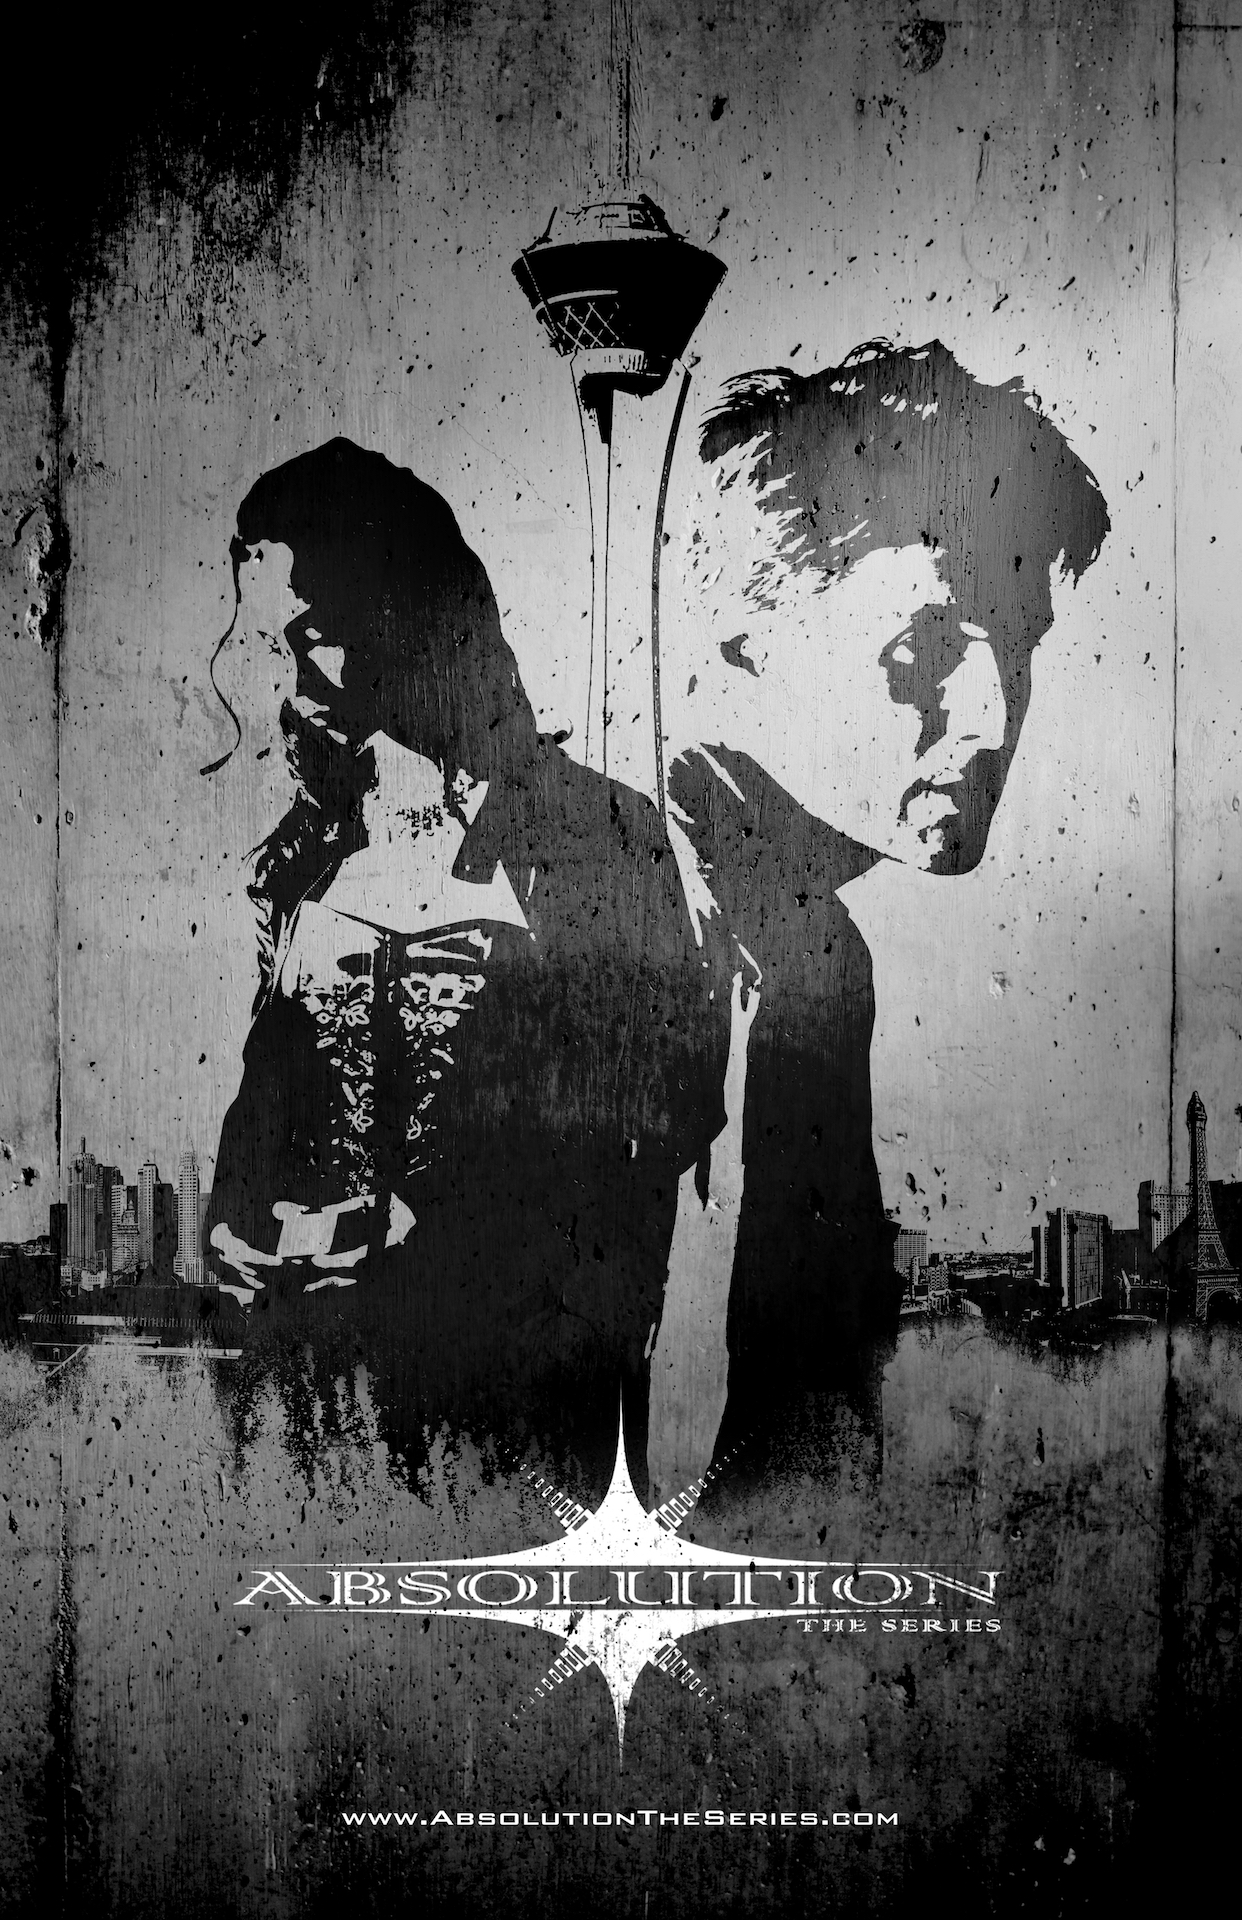 Absolution Poster(11x17) copy.jpg